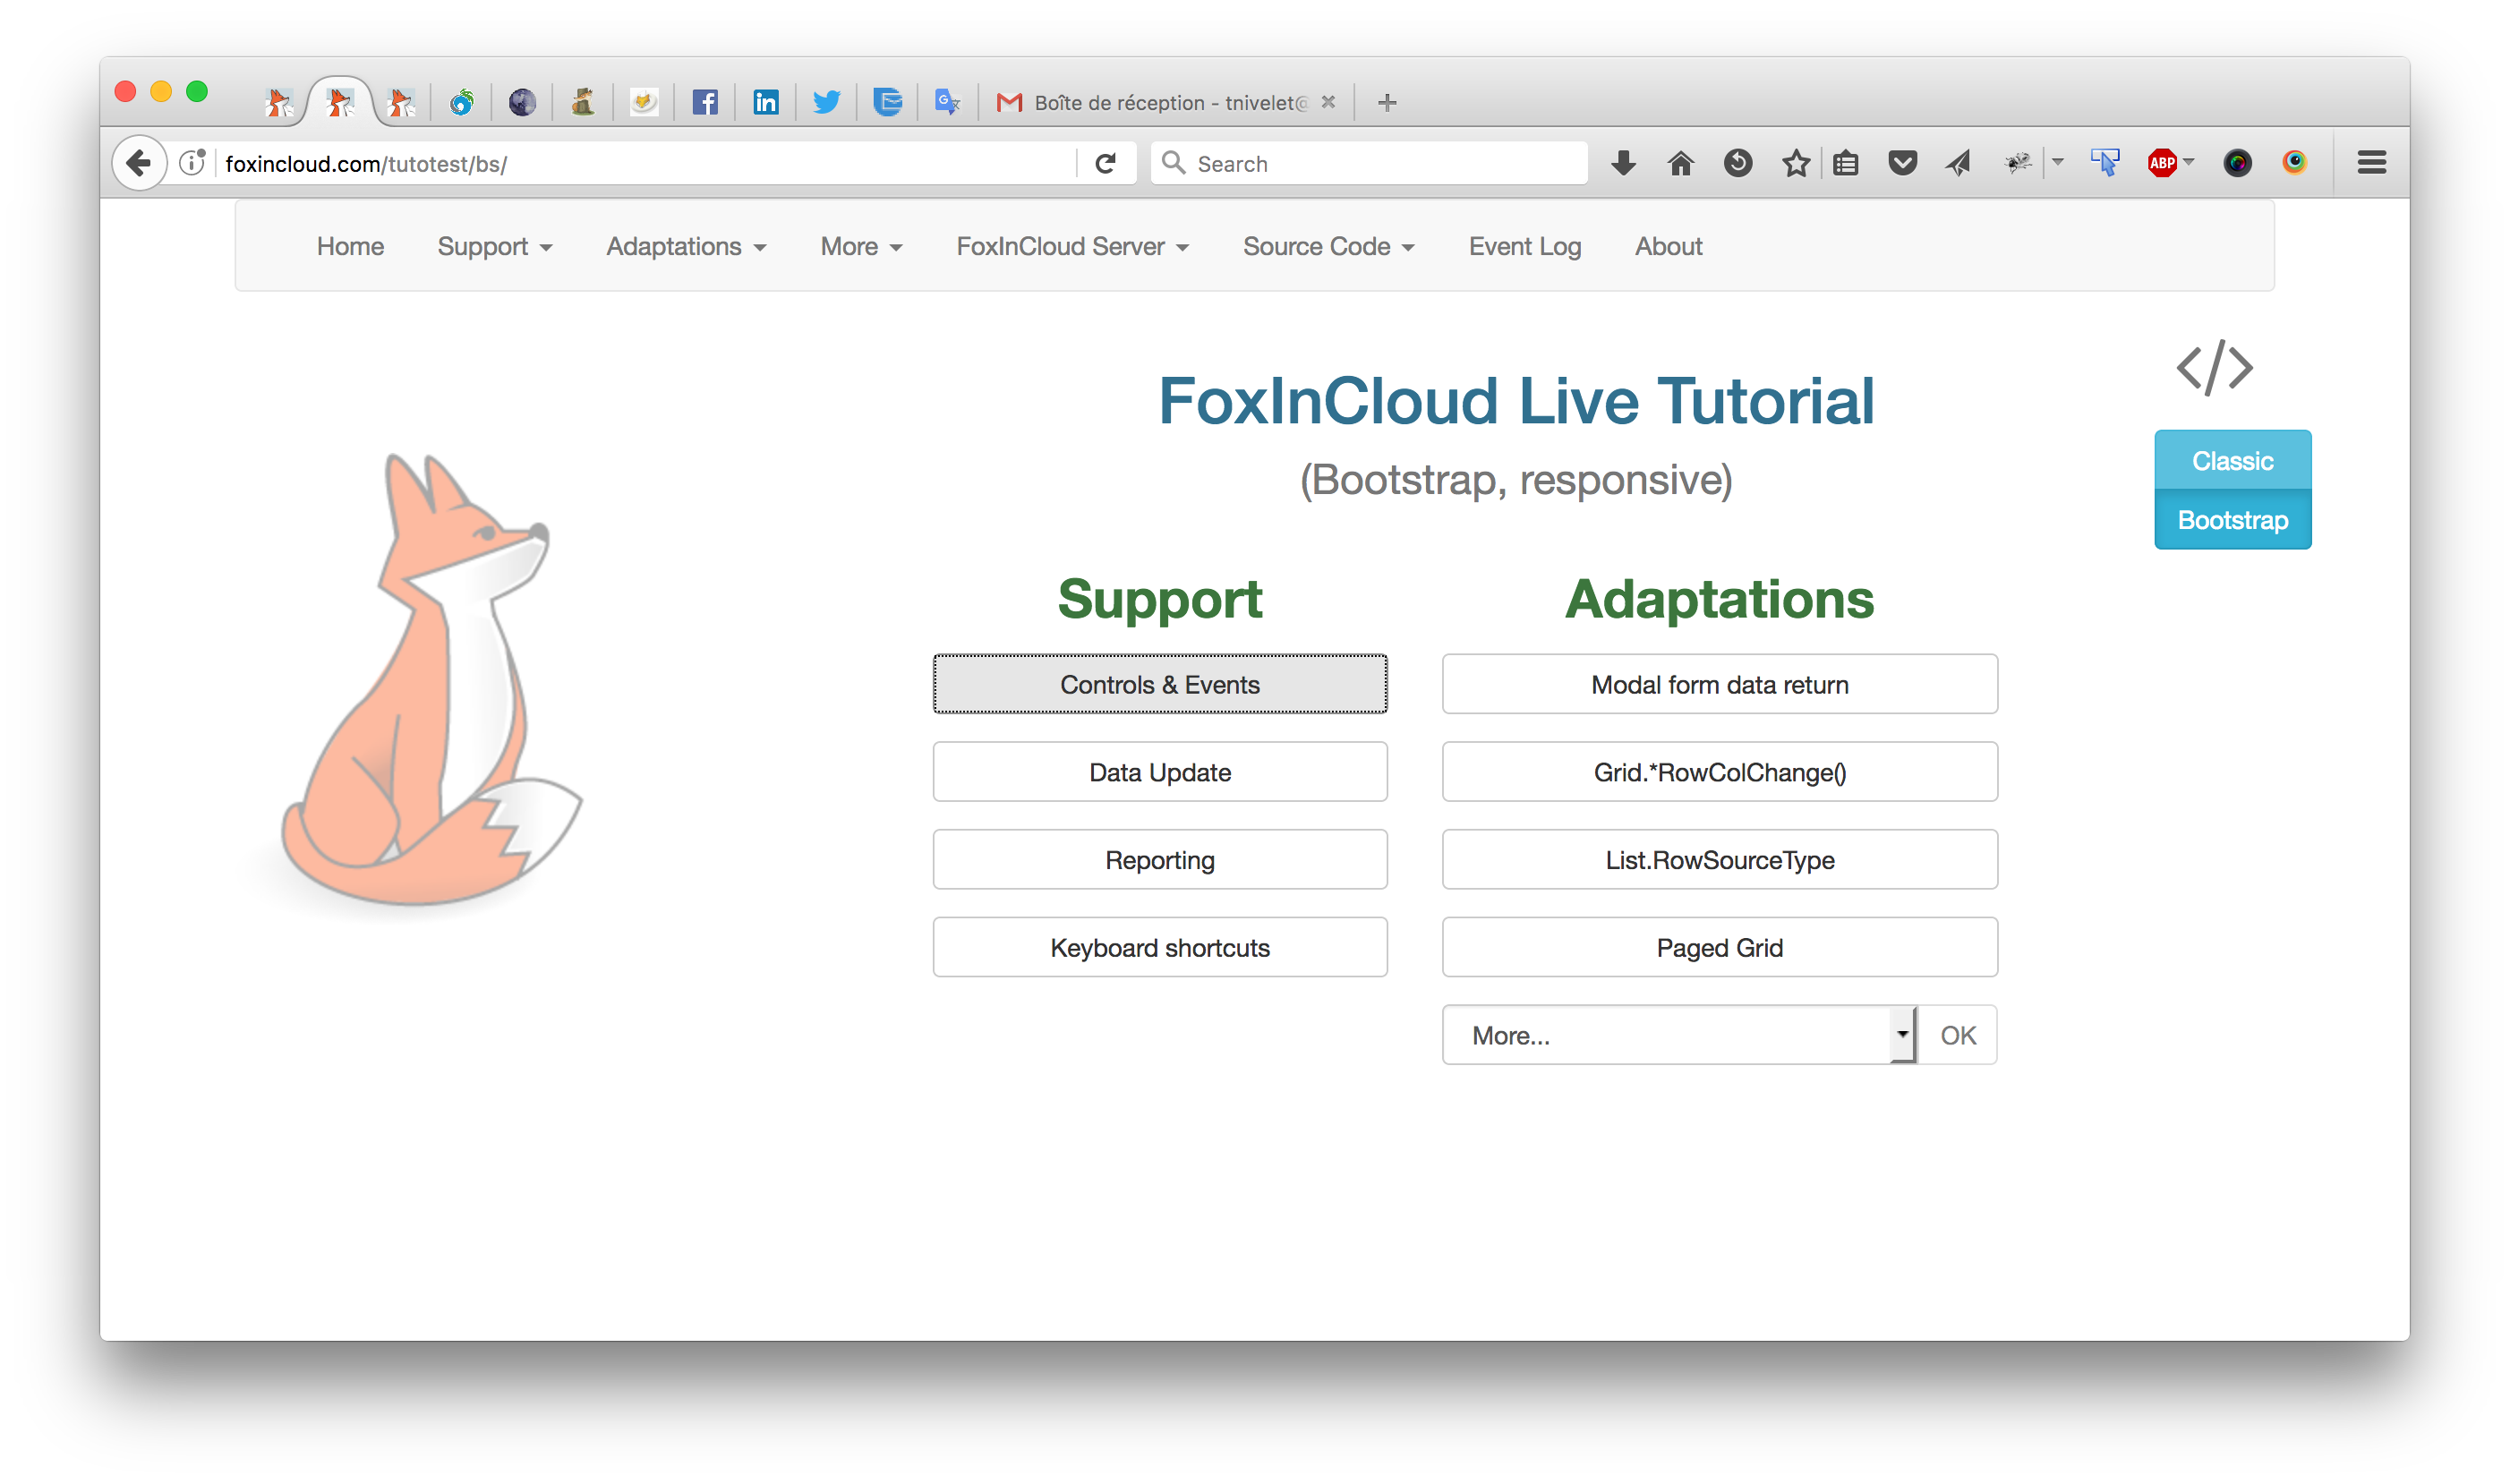 FoxInCloud Live Tutorial in Bootstrap responsive mode